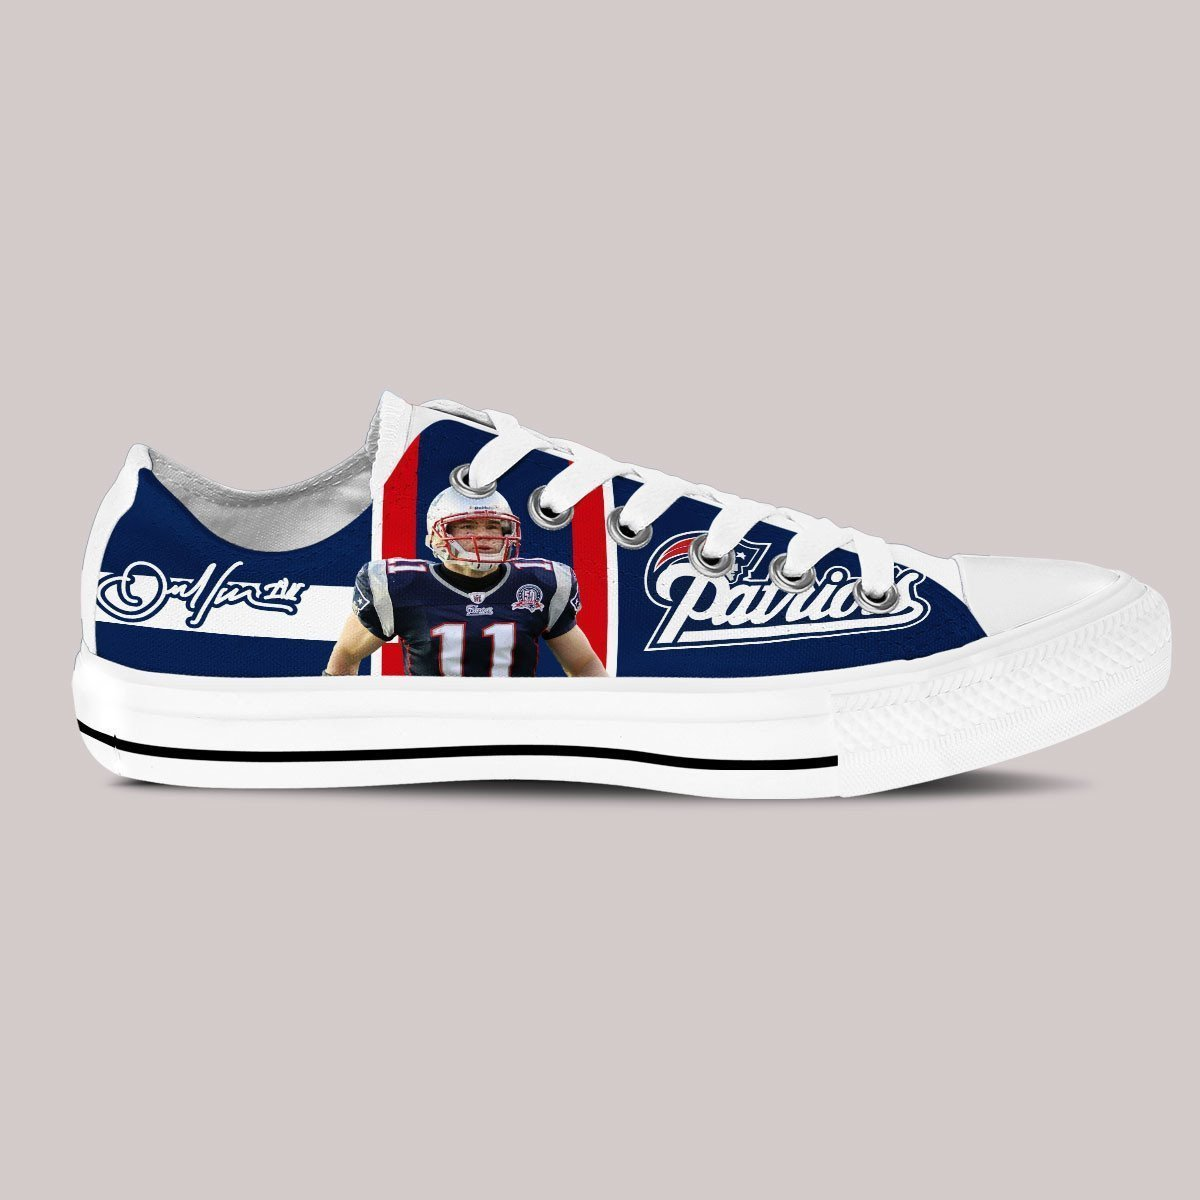 julian edelman ladies low cut sneakers